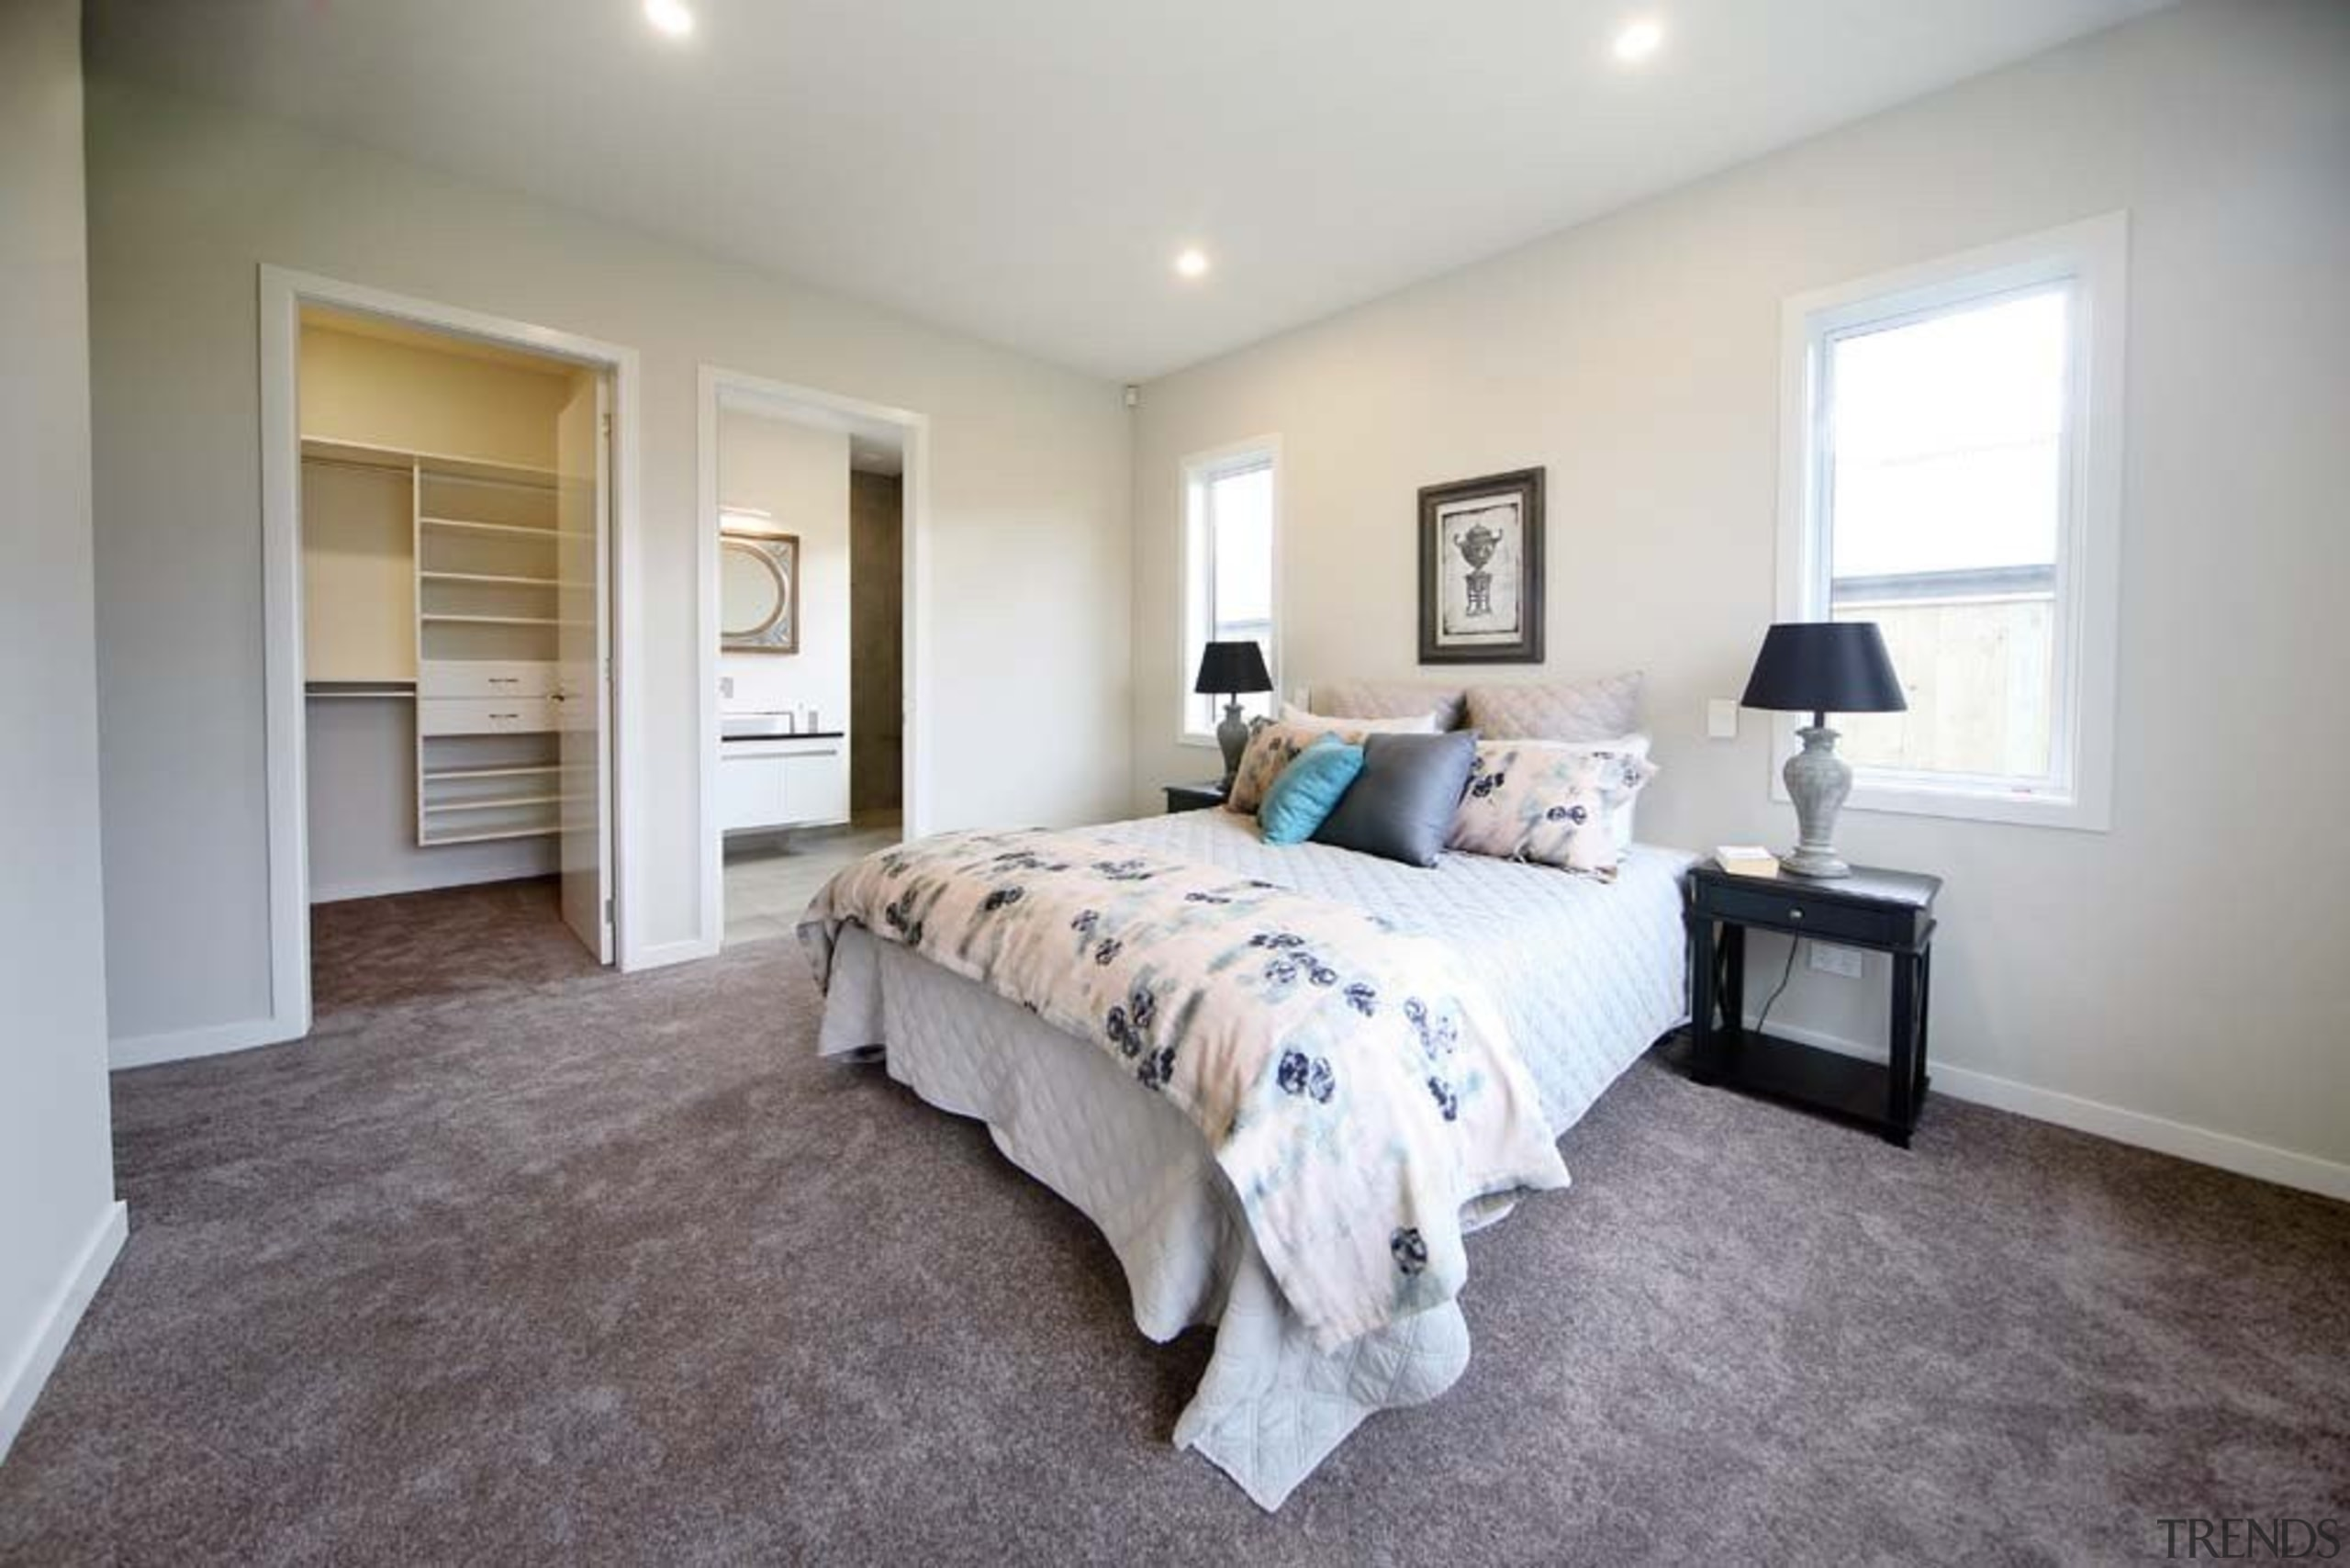 Master bedroom suite with walk in wardrobe and bed frame, bedroom, ceiling, estate, floor, flooring, home, house, interior design, property, real estate, room, wall, window, wood, gray